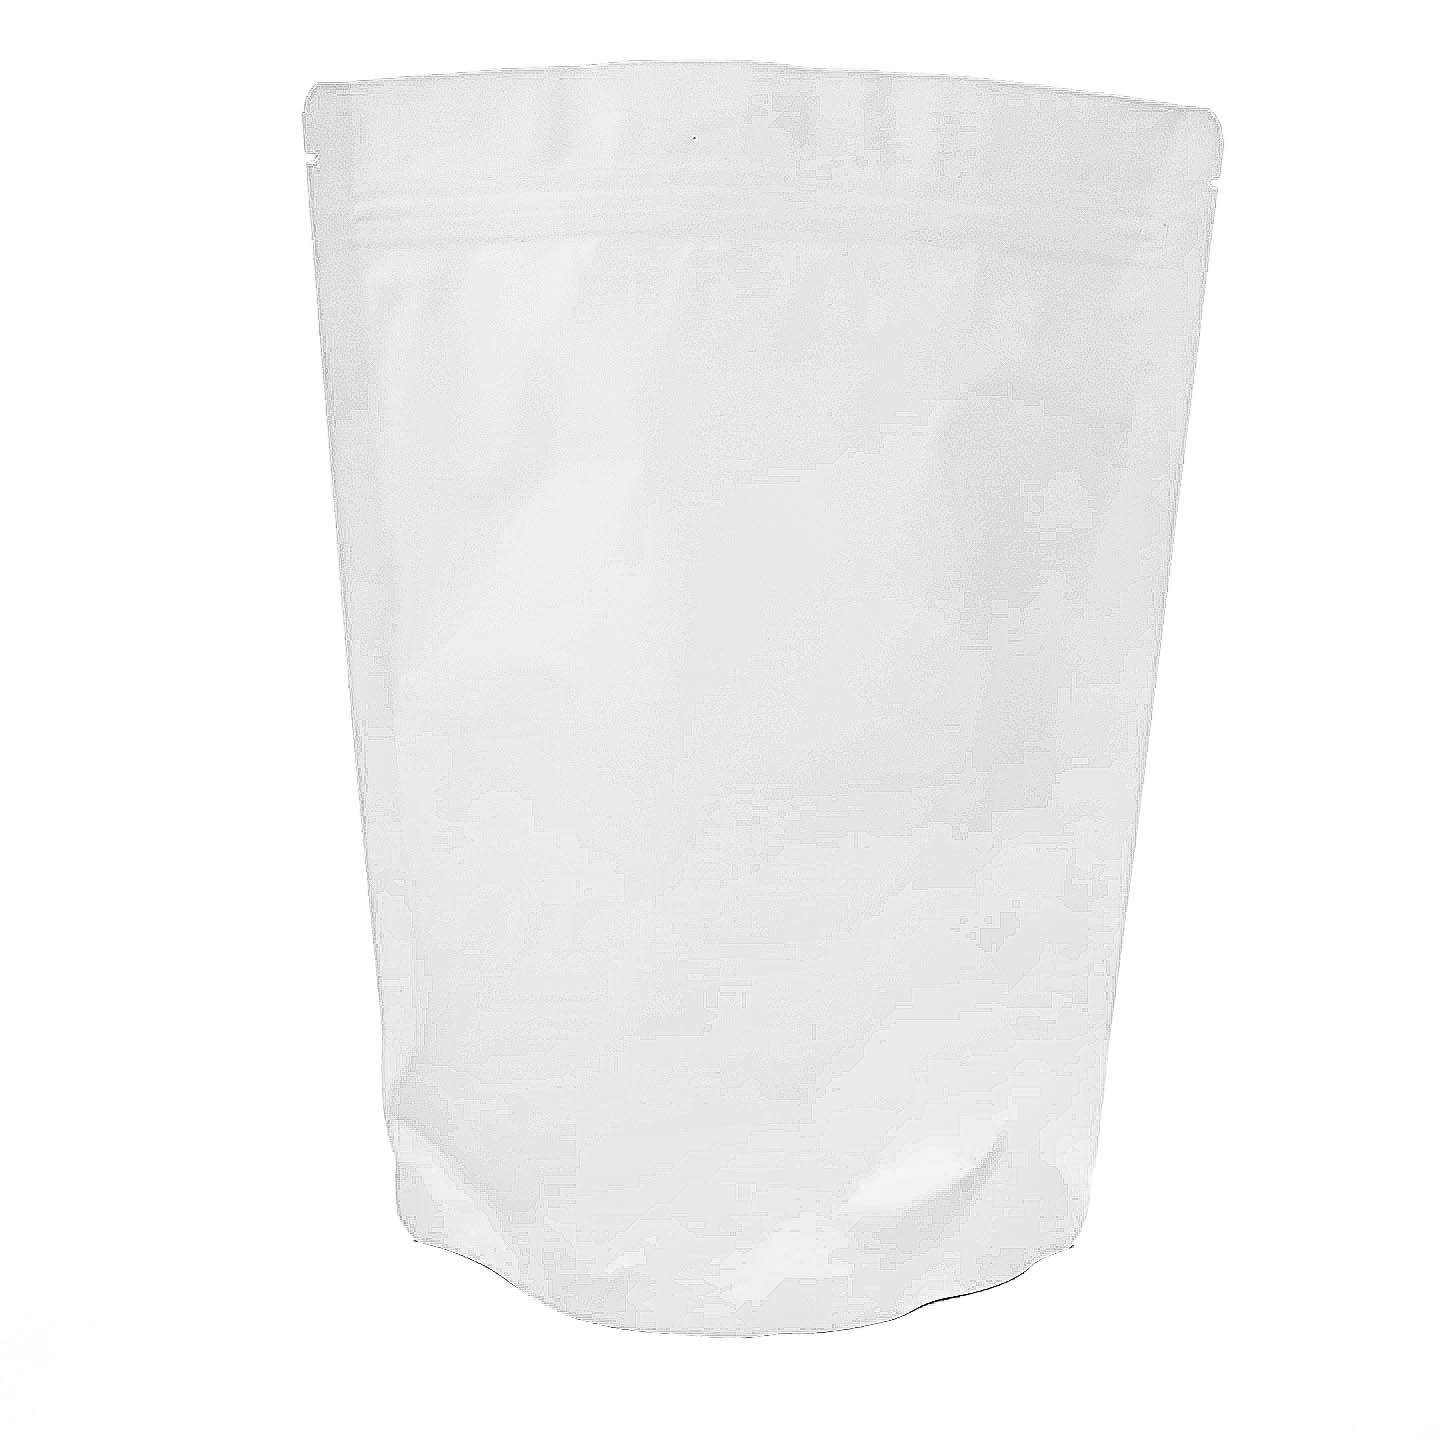 Matte White 7.8 X 10.6 Stand Up Airtight Zipper Genuine Aluminum Pouches - Smell Leak Proof Odor Resistant - Medical Herbs Coffee Powder Spices Multi-Purpose Storage Bags 16 oz (10)